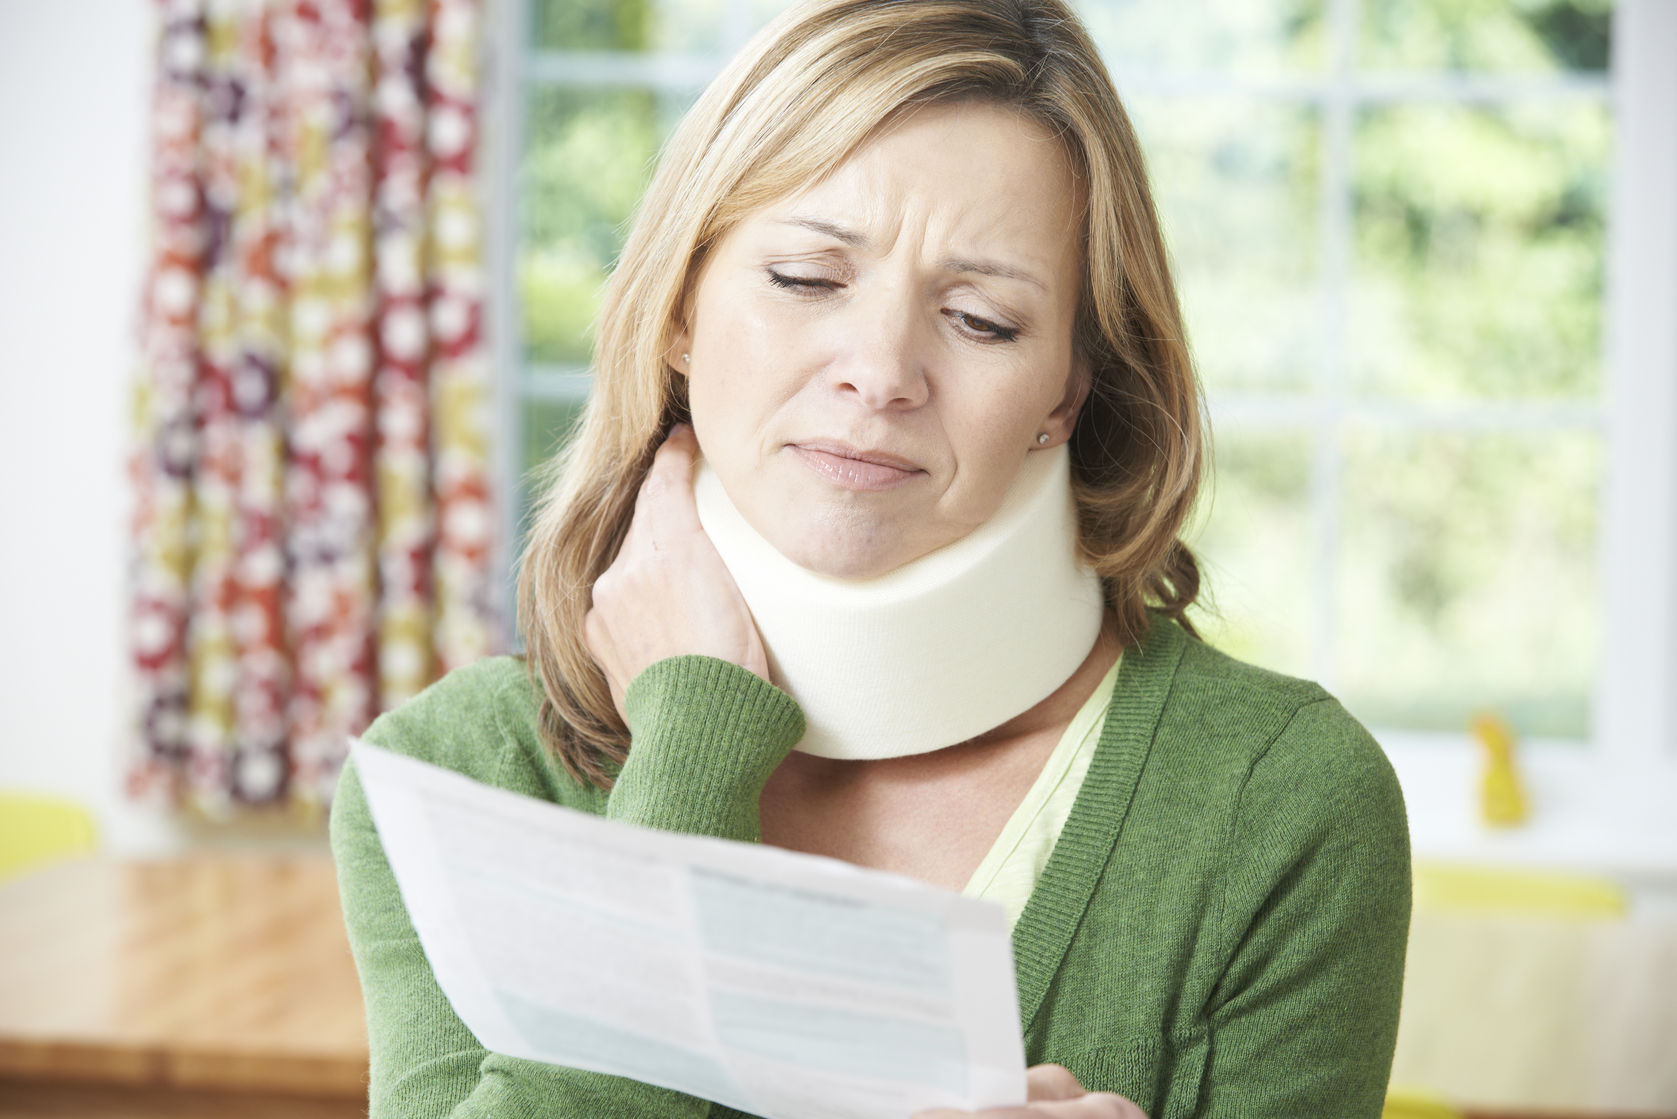 47816524 - woman reading letter after receiving neck injury